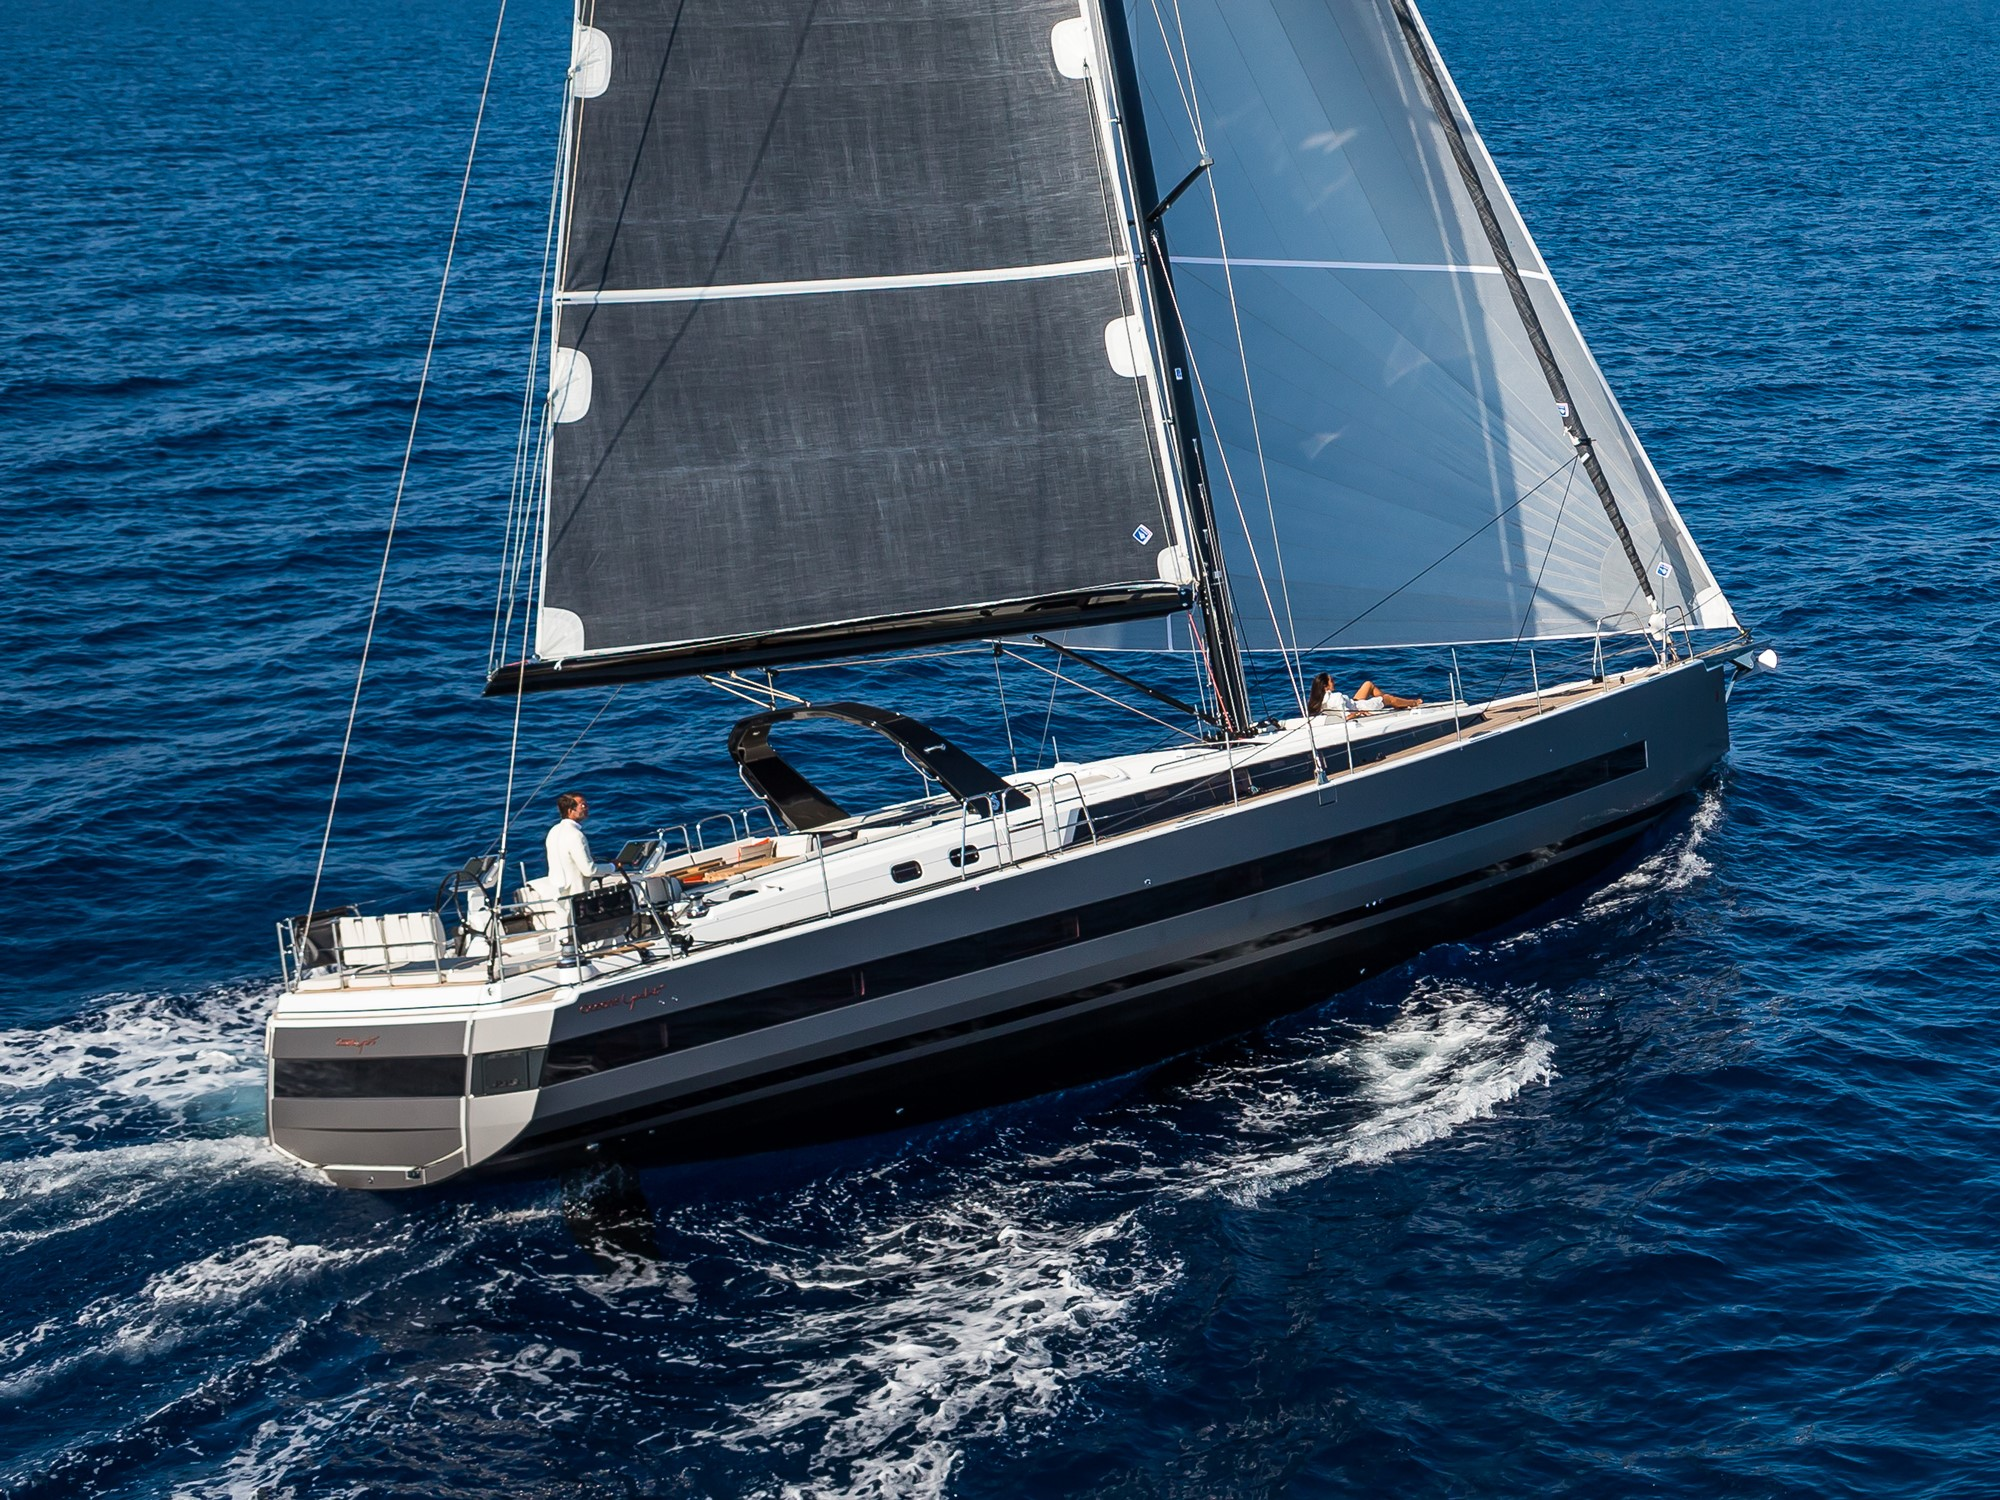 Beneteau Oceanis Yacht 62 Main Picture